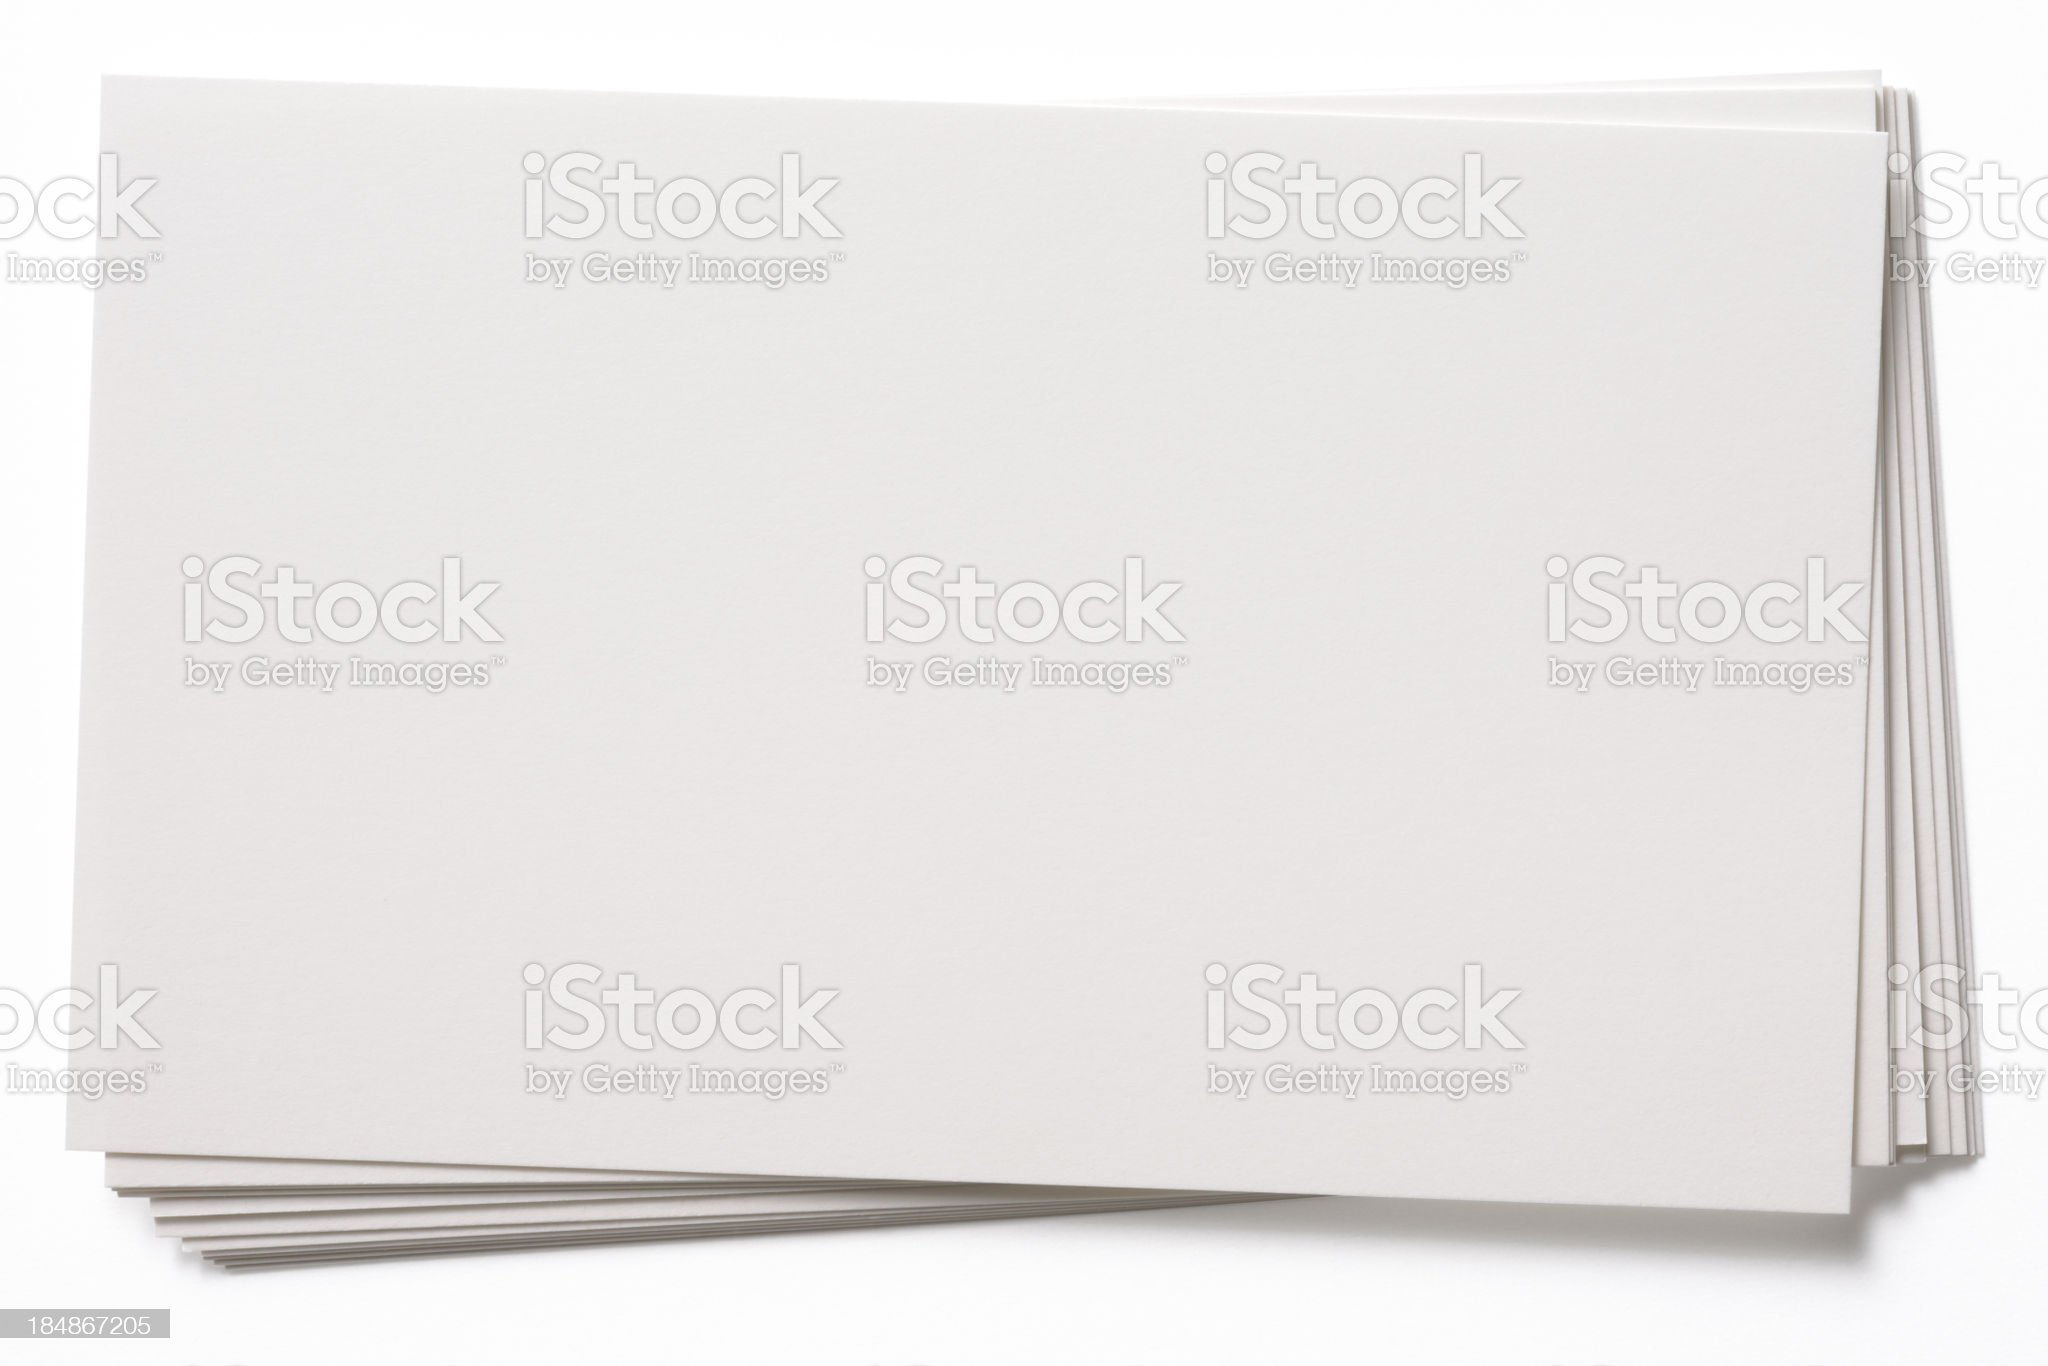 Isolated shot of stacked blank white cards on white background royalty-free stock photo